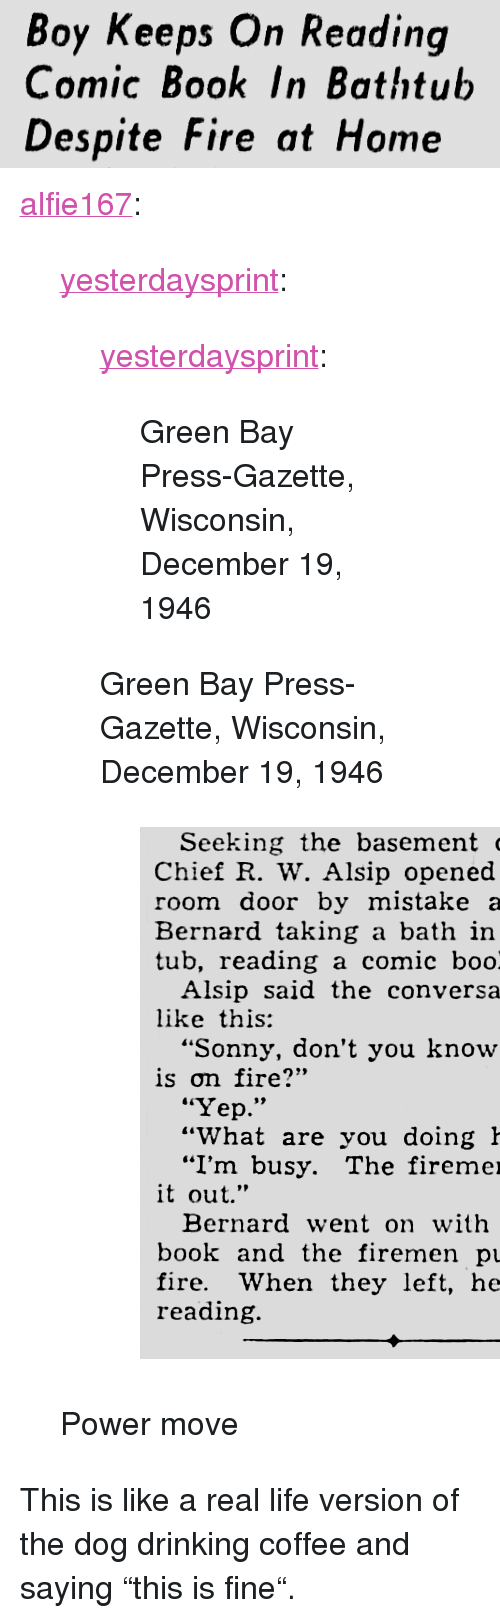 """Drinking, Fire, and Life: Boy Keeps On Reading  Comic Book In Bathtub  Despite Fire at Home <p><a href=""""https://alfie167.tumblr.com/post/170468702570/yesterdaysprint-yesterdaysprint-green-bay"""" class=""""tumblr_blog"""">alfie167</a>:</p>  <blockquote><p><a href=""""http://yesterdays-print.com/post/170130226824/yesterdaysprint-green-bay-press-gazette"""" class=""""tumblr_blog"""">yesterdaysprint</a>:</p> <blockquote> <p><a href=""""http://yesterdays-print.com/post/170129982319/green-bay-press-gazette-wisconsin-december-19"""" class=""""tumblr_blog"""">yesterdaysprint</a>:</p> <blockquote><p> Green Bay Press-Gazette, Wisconsin, December 19, 1946<br/></p></blockquote> <p>Green Bay Press-Gazette, Wisconsin, December 19, 1946<br/></p> <figure class=""""tmblr-full"""" data-orig-height=""""532"""" data-orig-width=""""509""""><img src=""""https://78.media.tumblr.com/95cb15a67774631dacc45049280742f0/tumblr_inline_p34xcpsUn11sgr92o_540.png"""" data-orig-height=""""532"""" data-orig-width=""""509""""/></figure></blockquote>  <p>Power move</p></blockquote>  <p>This is like a real life version of the dog drinking coffee and saying """"this is fine"""".</p>"""